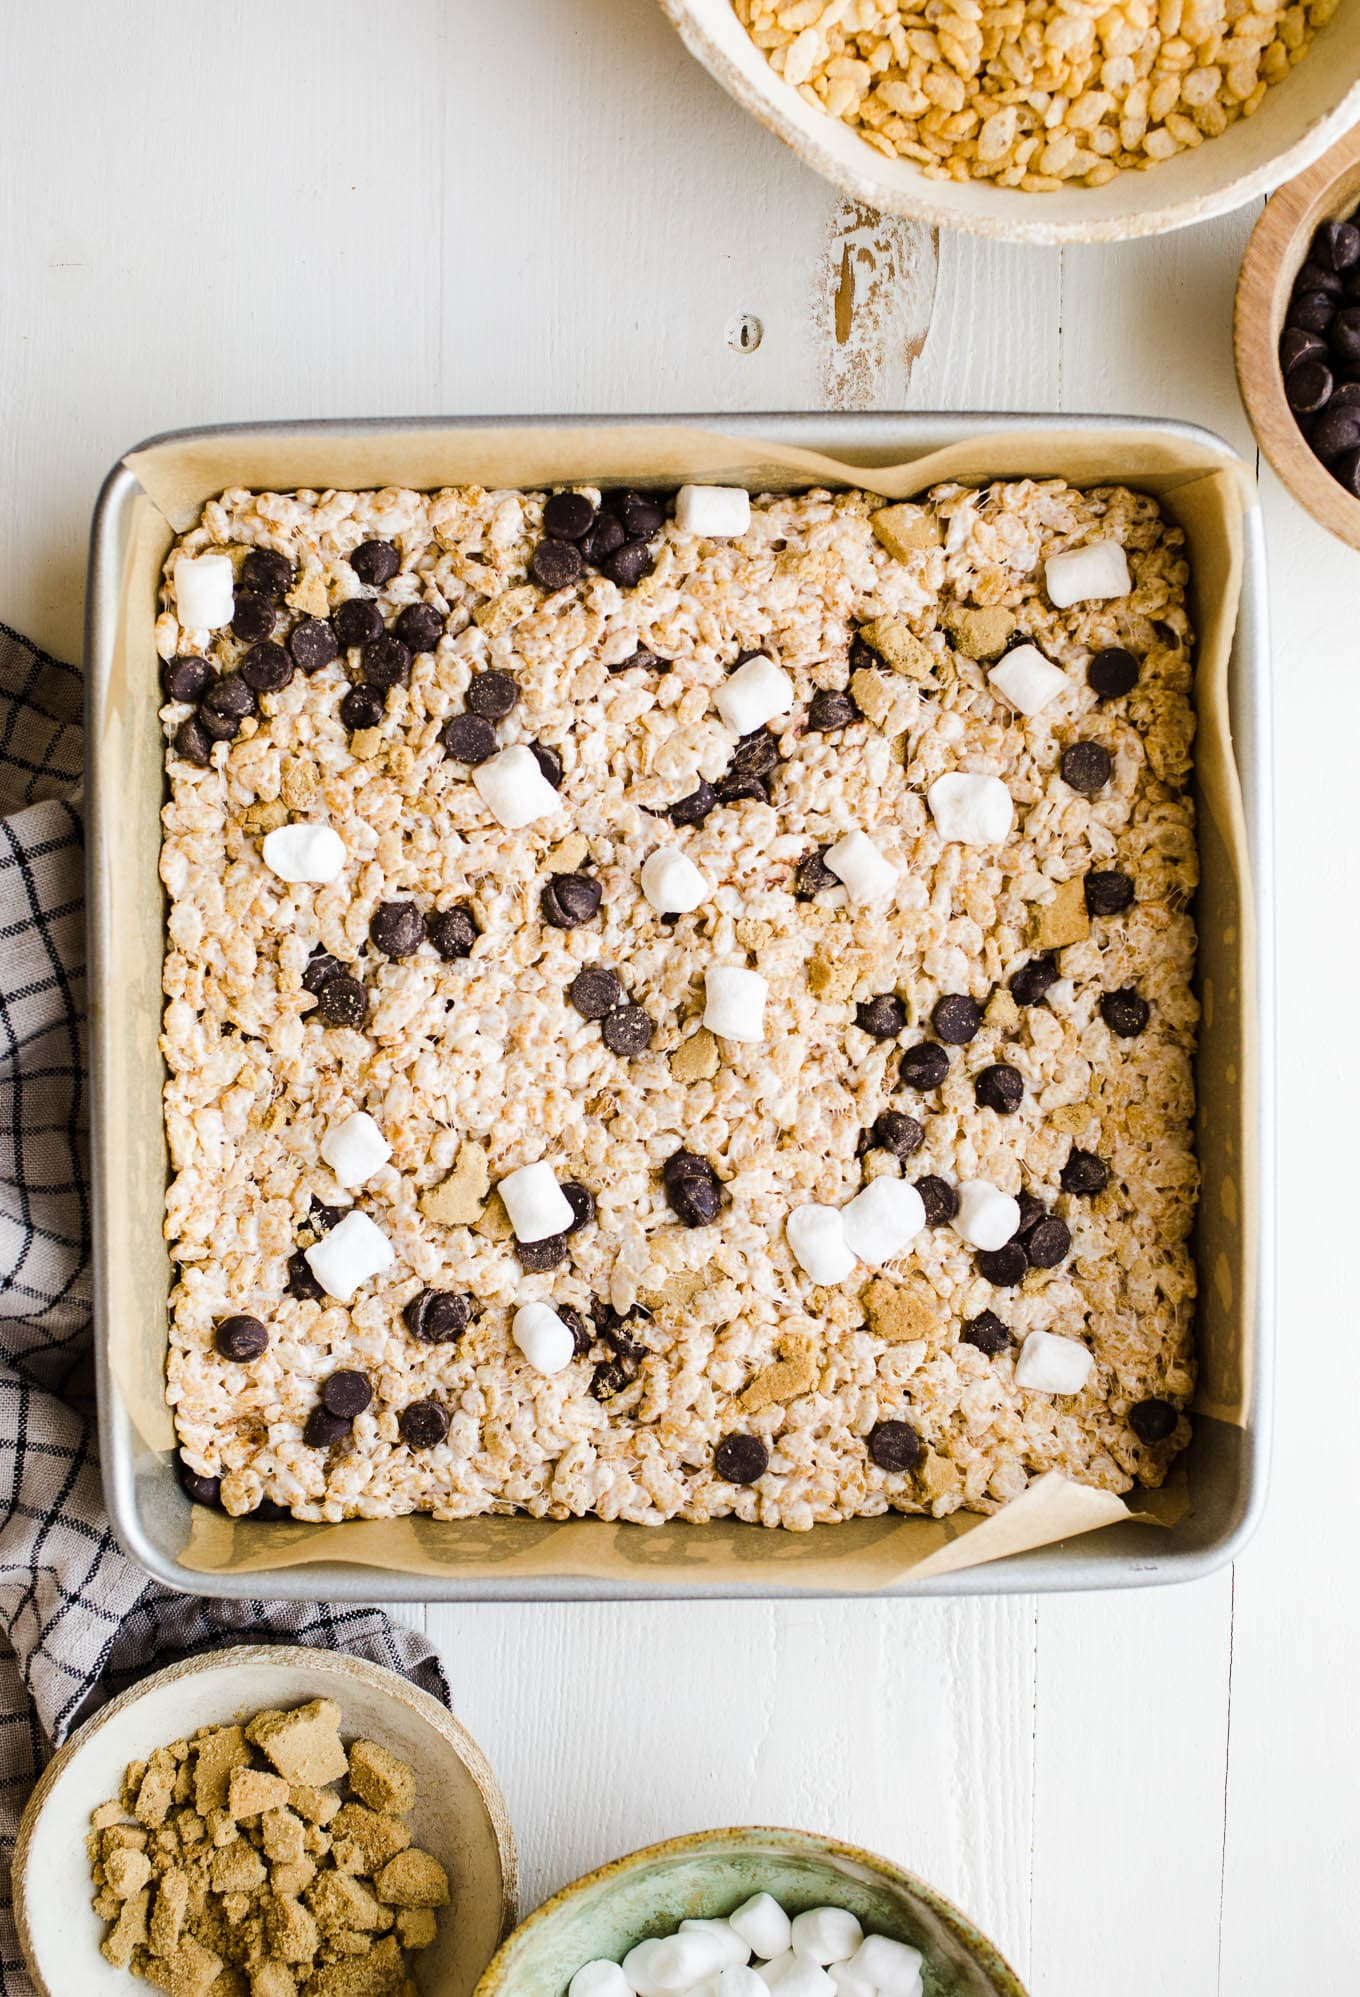 This S'mores Rice Krispies Treats recipe made with rice cereal, graham crackers, chocolate chips, and mini marshmallows makes for a fun variation!